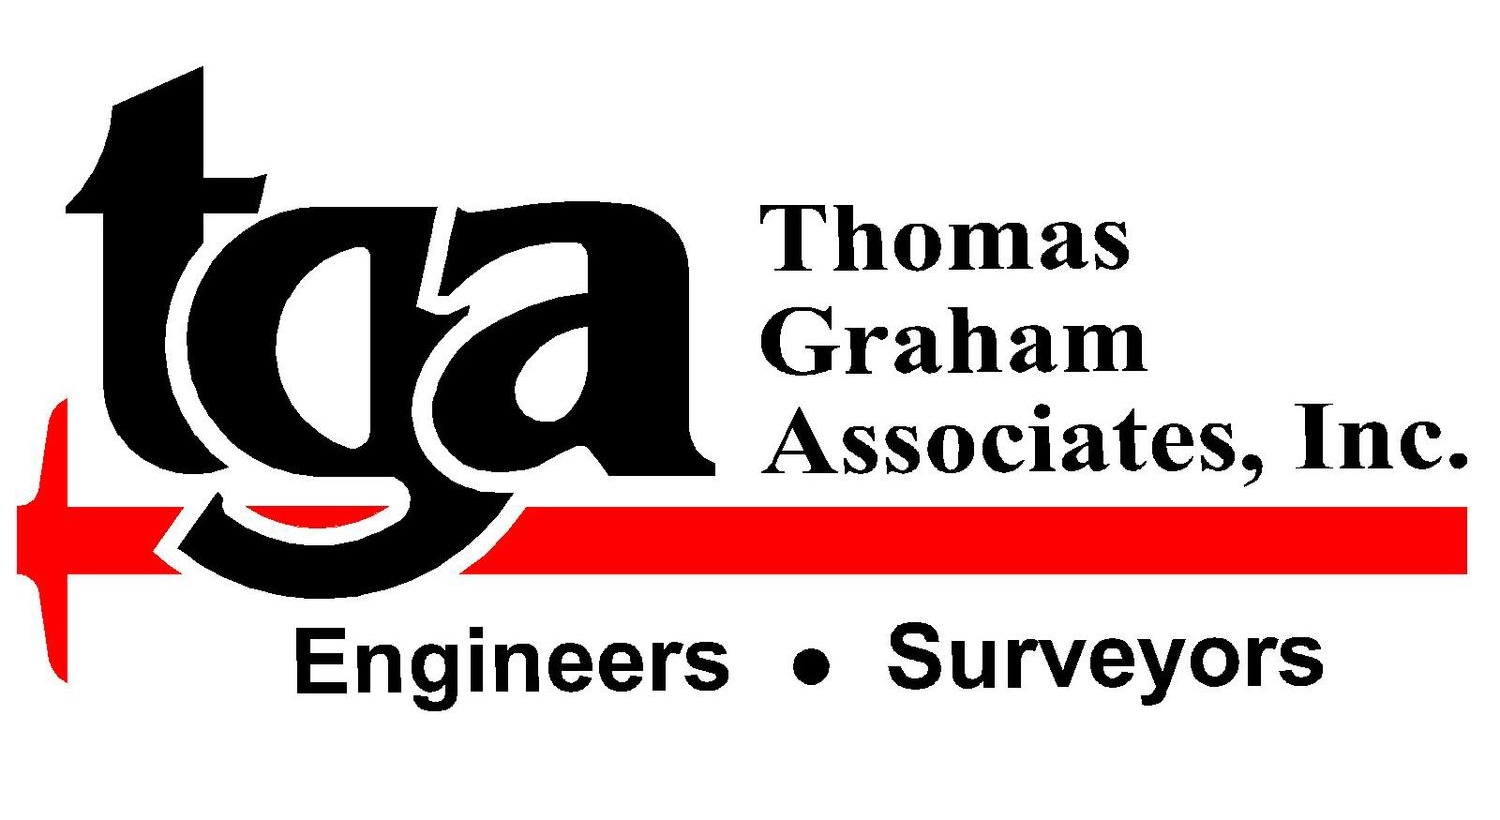 Thomas Graham Associates, Inc.